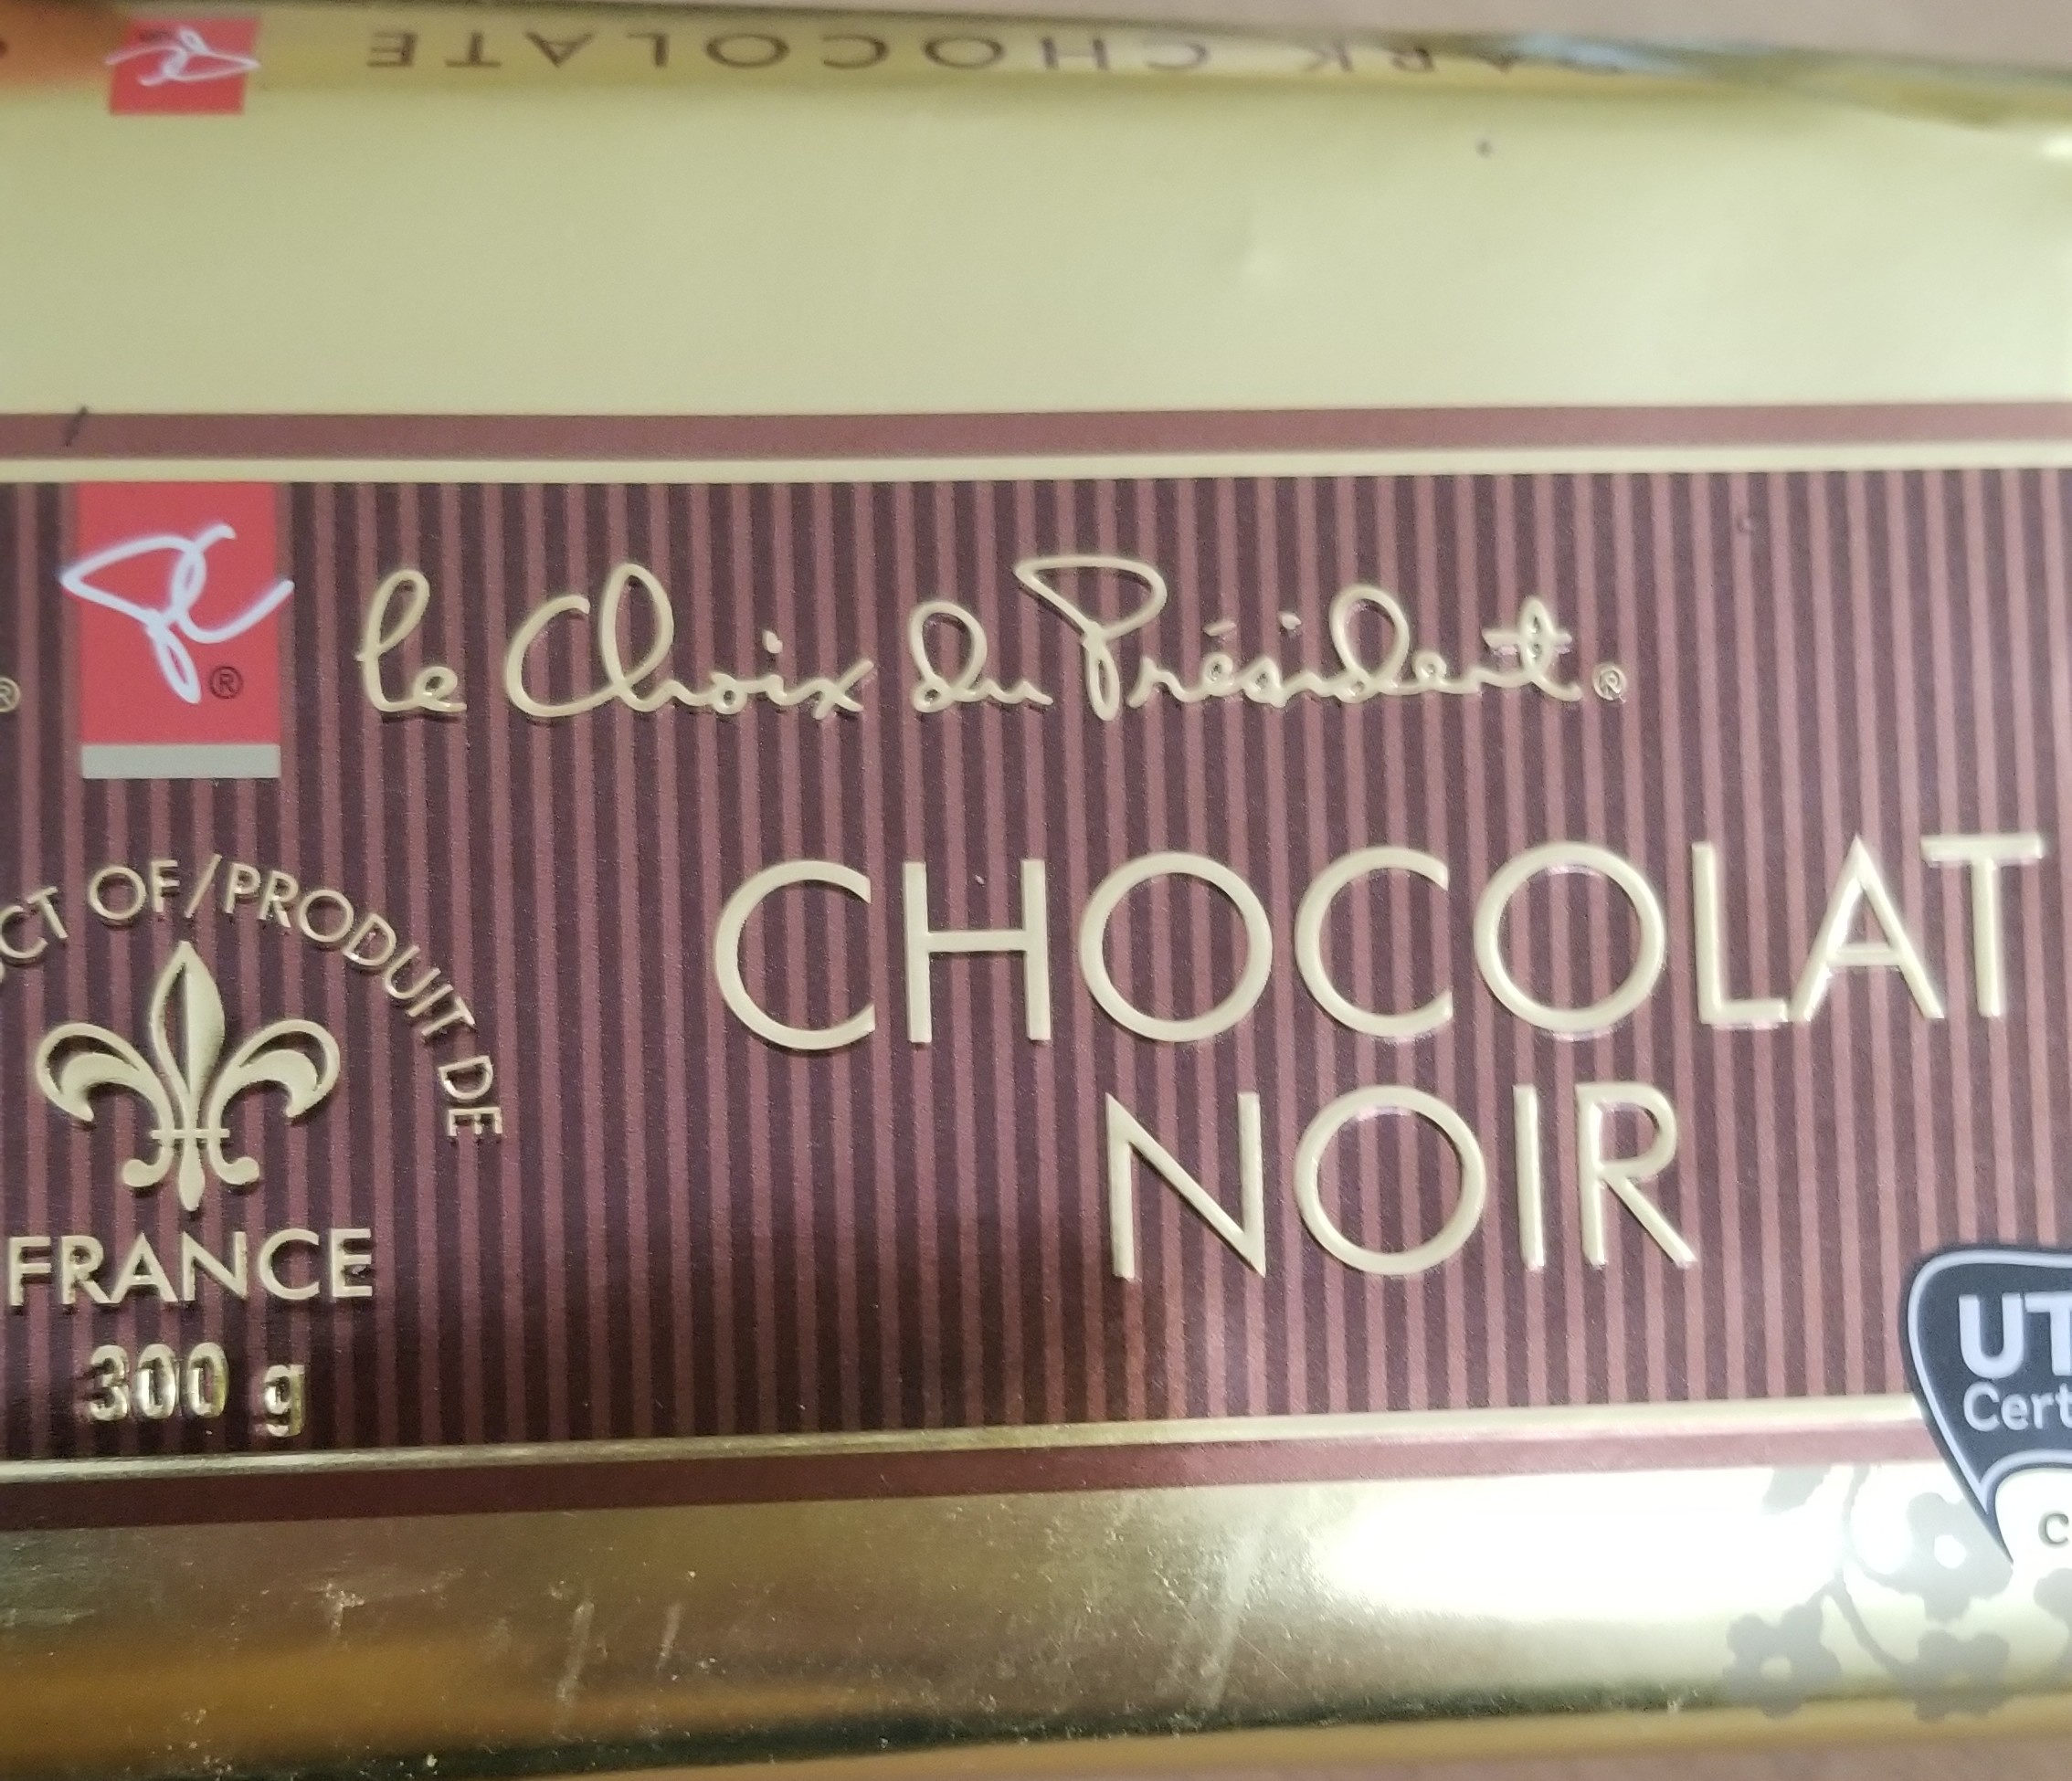 Cocoa solids dark chocolate - Product - fr